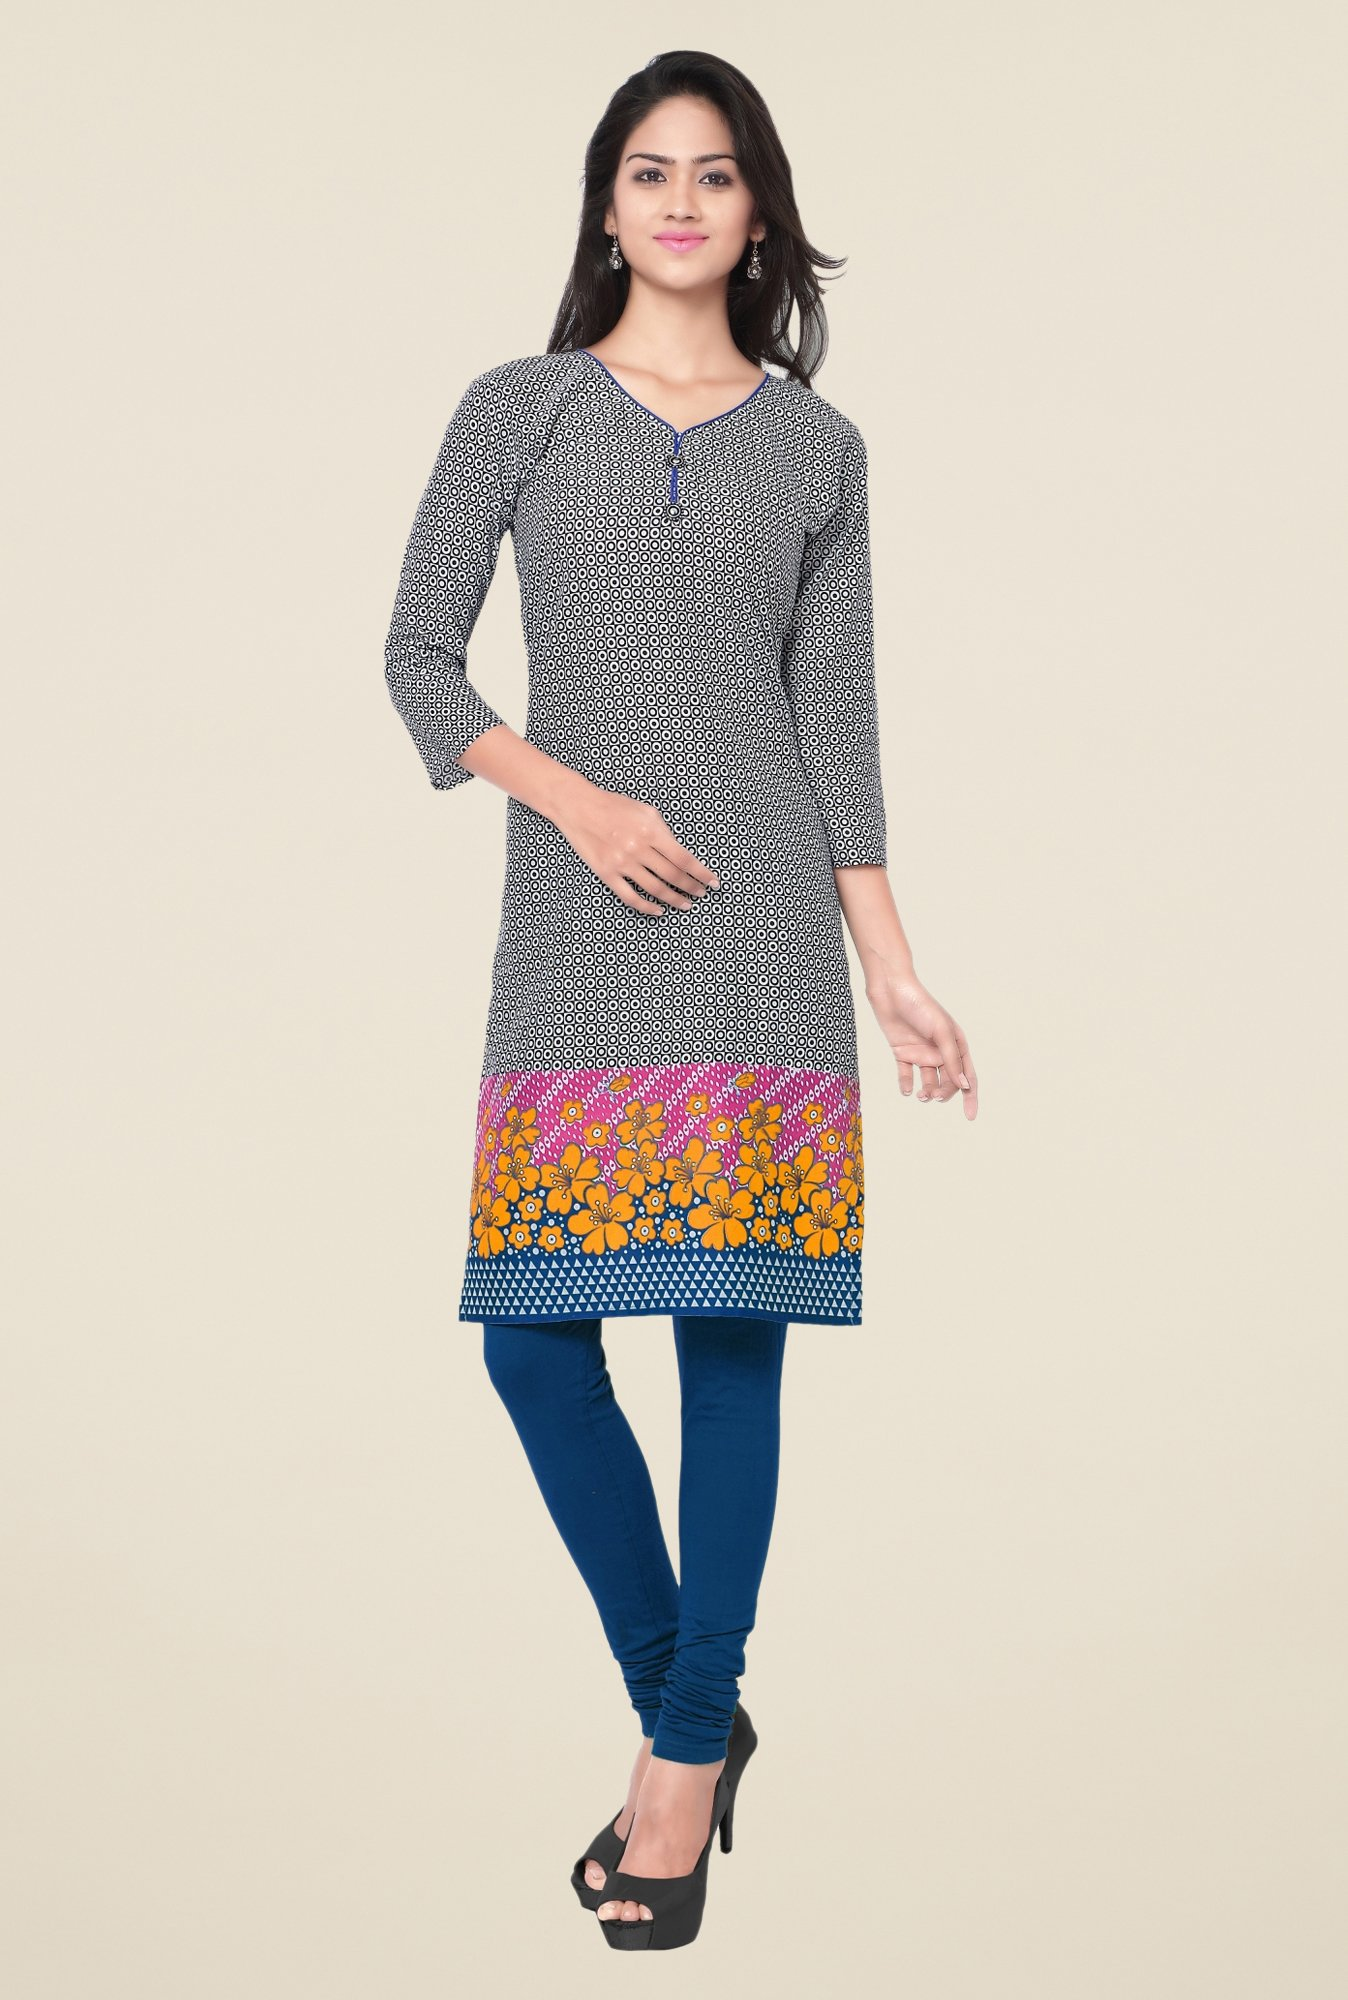 Triveni Black Printed Blended Cotton Kurta